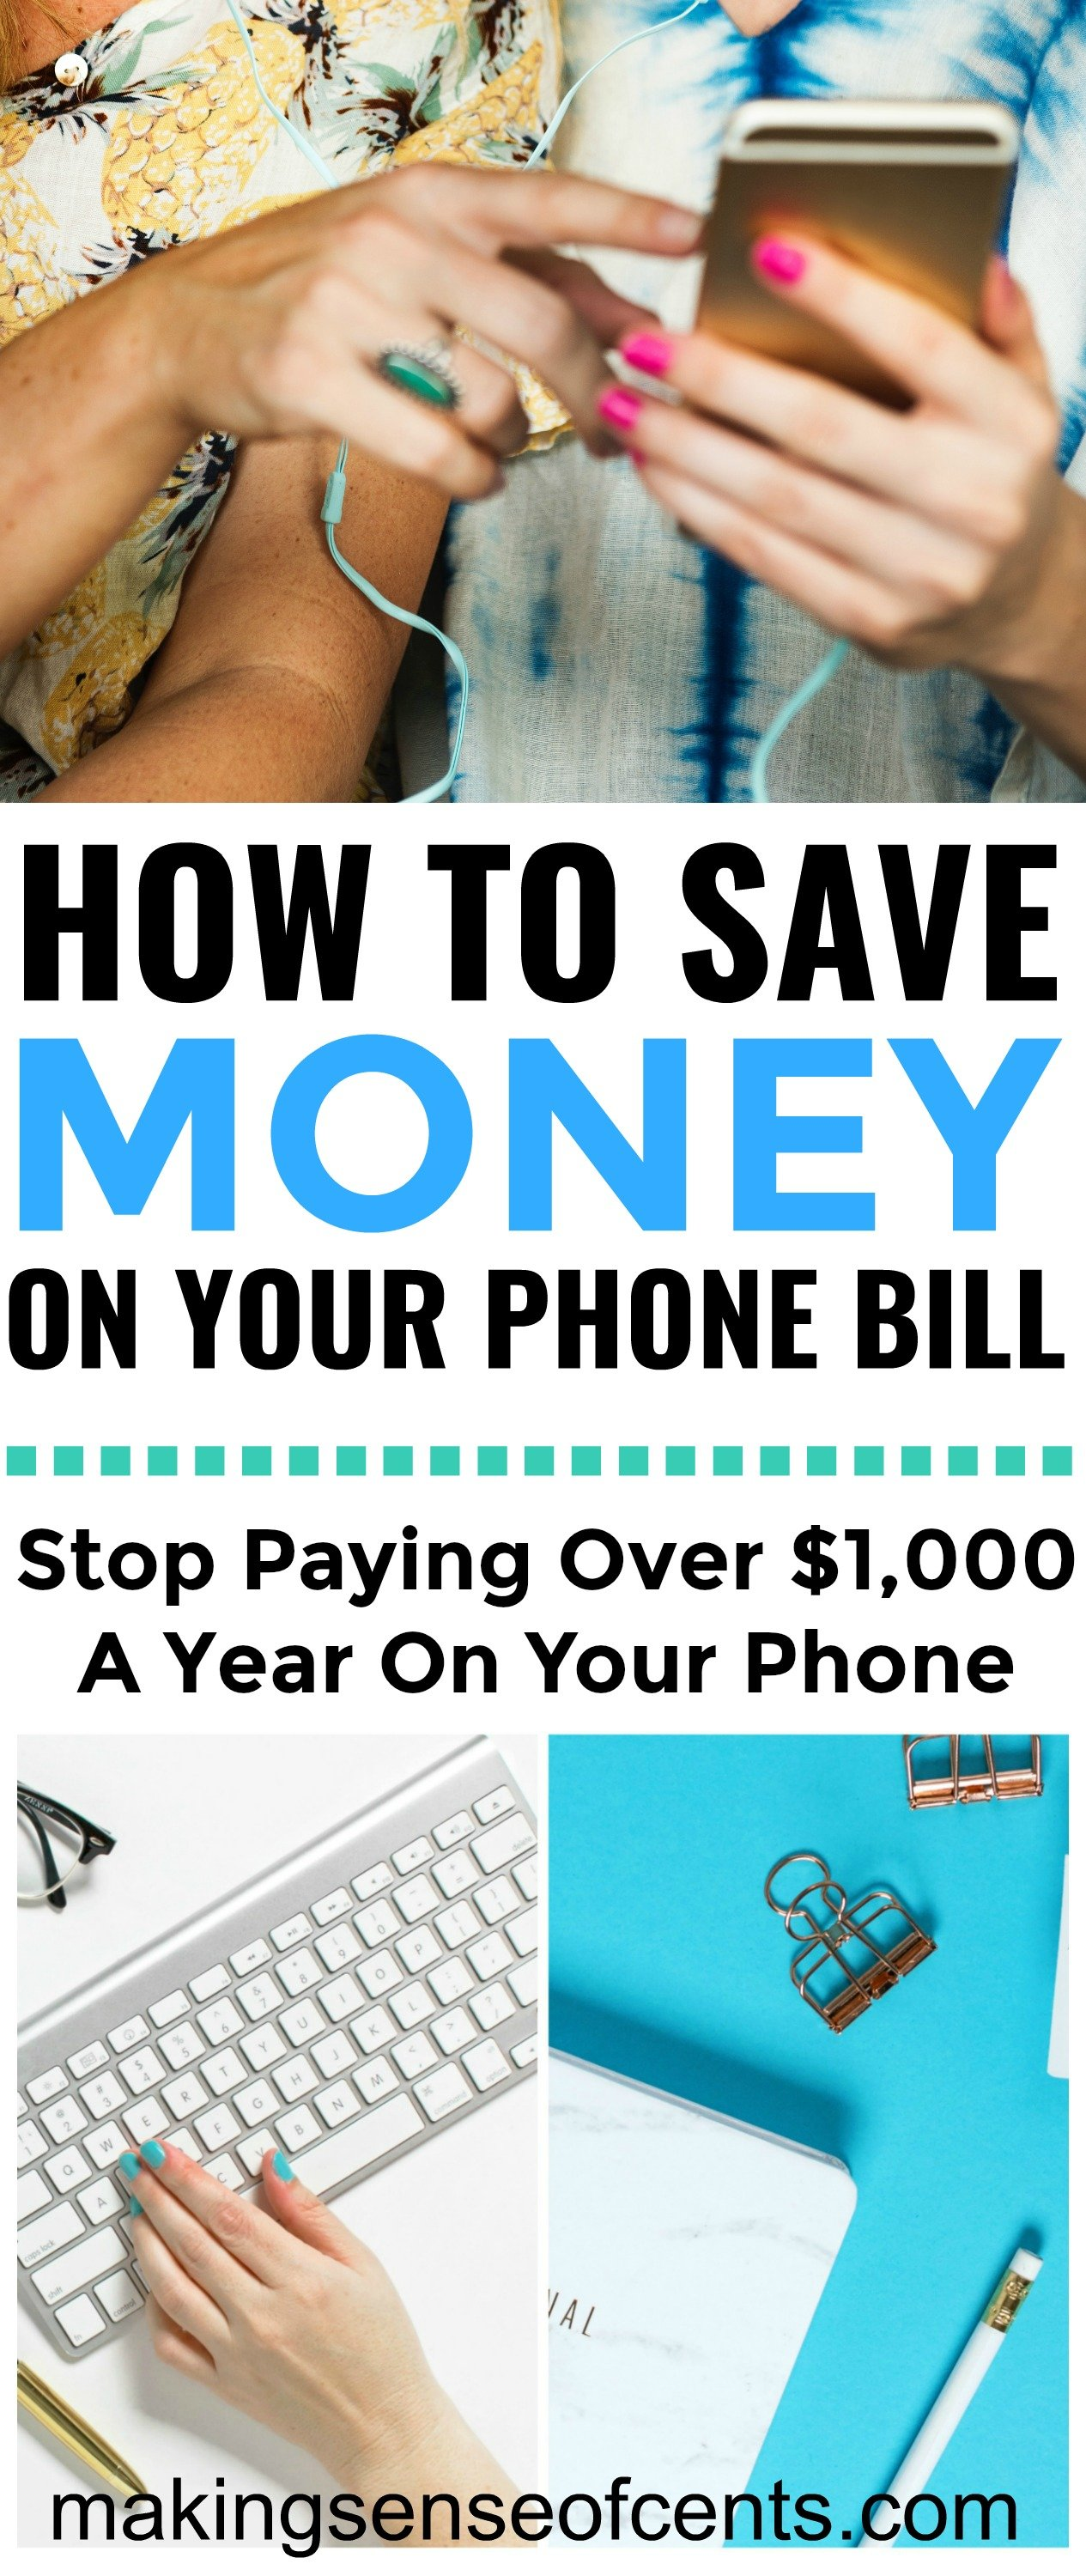 How To Save Money On Your Phone Bill: Find Cheap Cell Phone